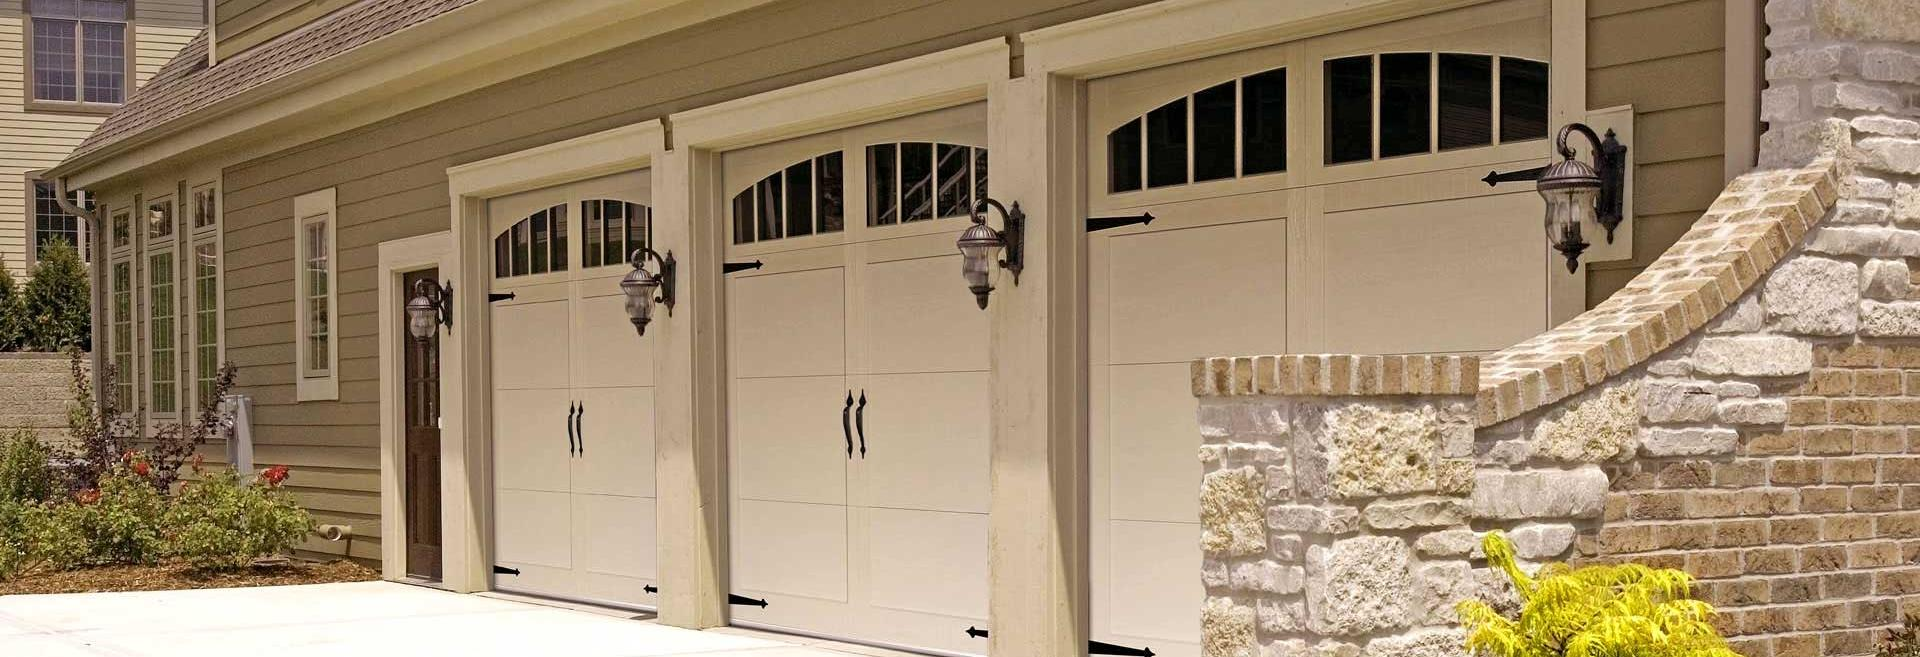 A1 Garage Door Service, Repair, Sales, Maintenance,Installation In Arizona